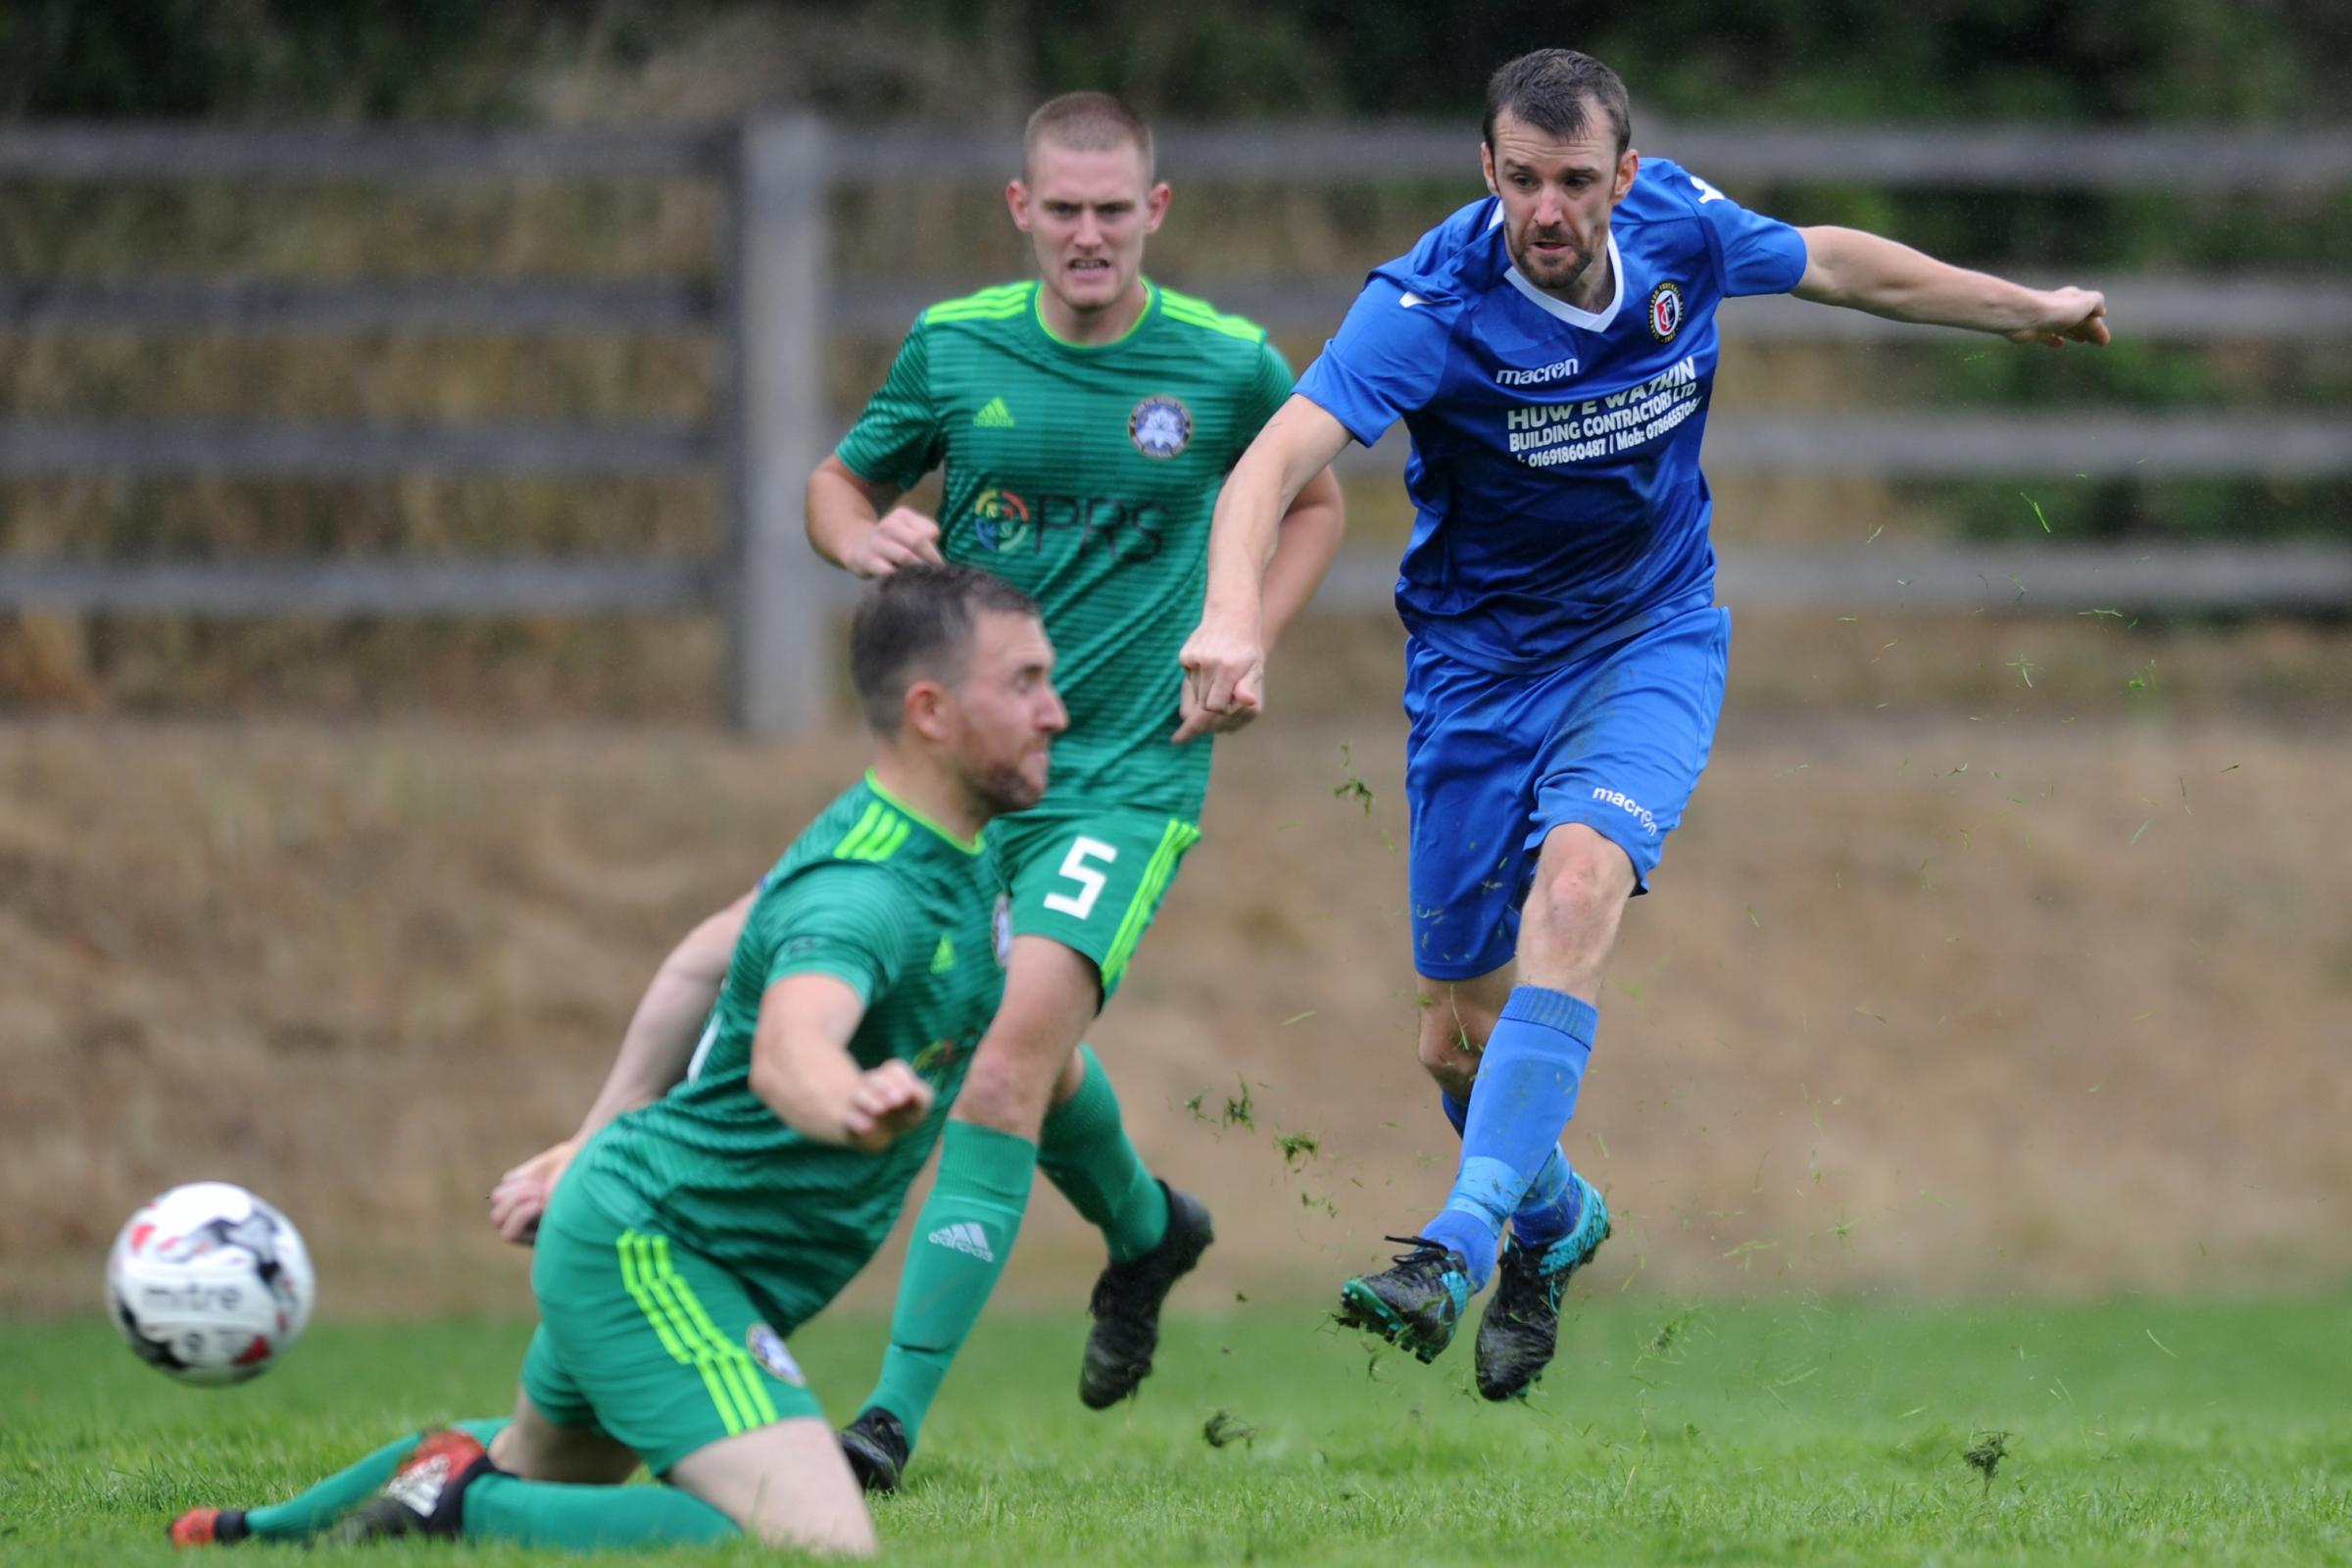 11/8/2018 - Marc Griffiths shoots during the Huws Gray Alliance fixture between Llanrhaeadr and Rhyl at Treflan, Llansantffraid,..Pic: Mike Sheridan/County Times.MS207-2018.